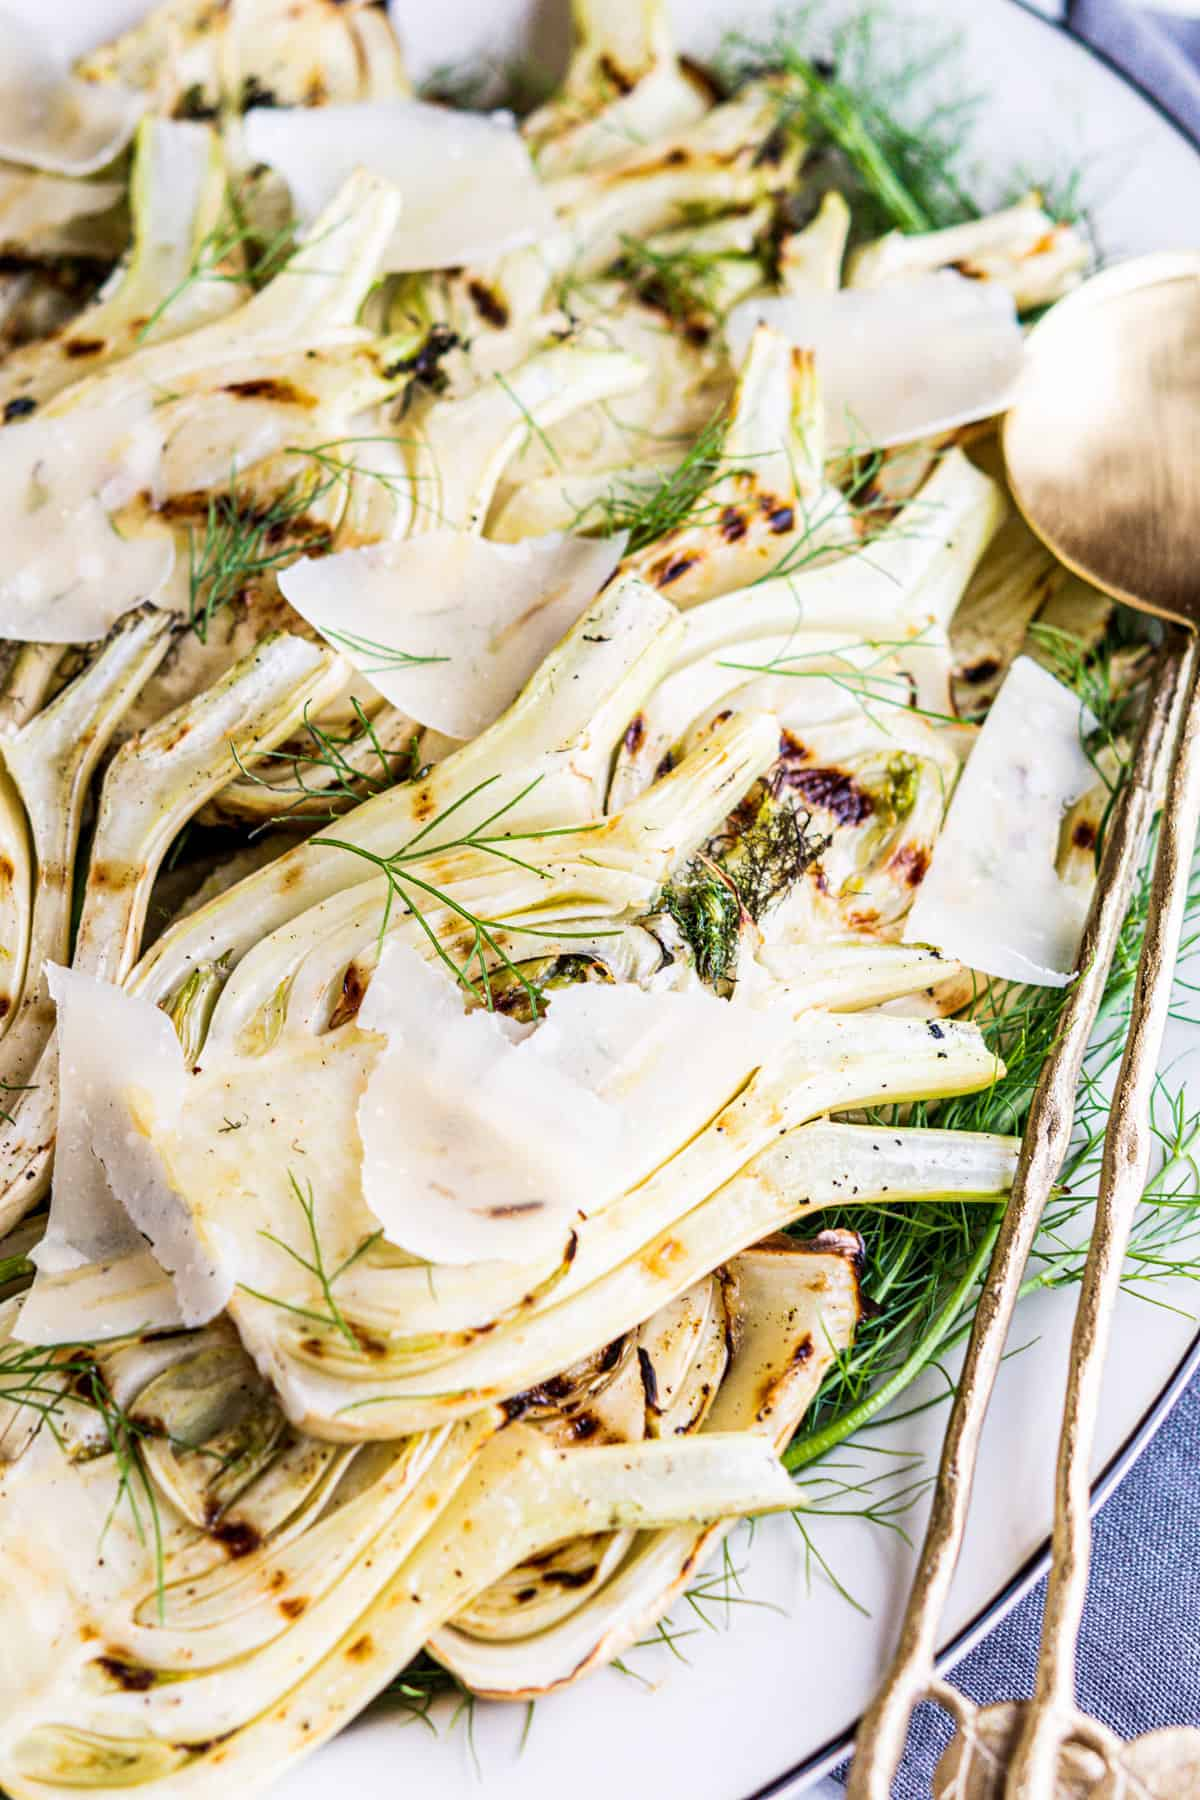 Grilled Fennel on an oval white platter.